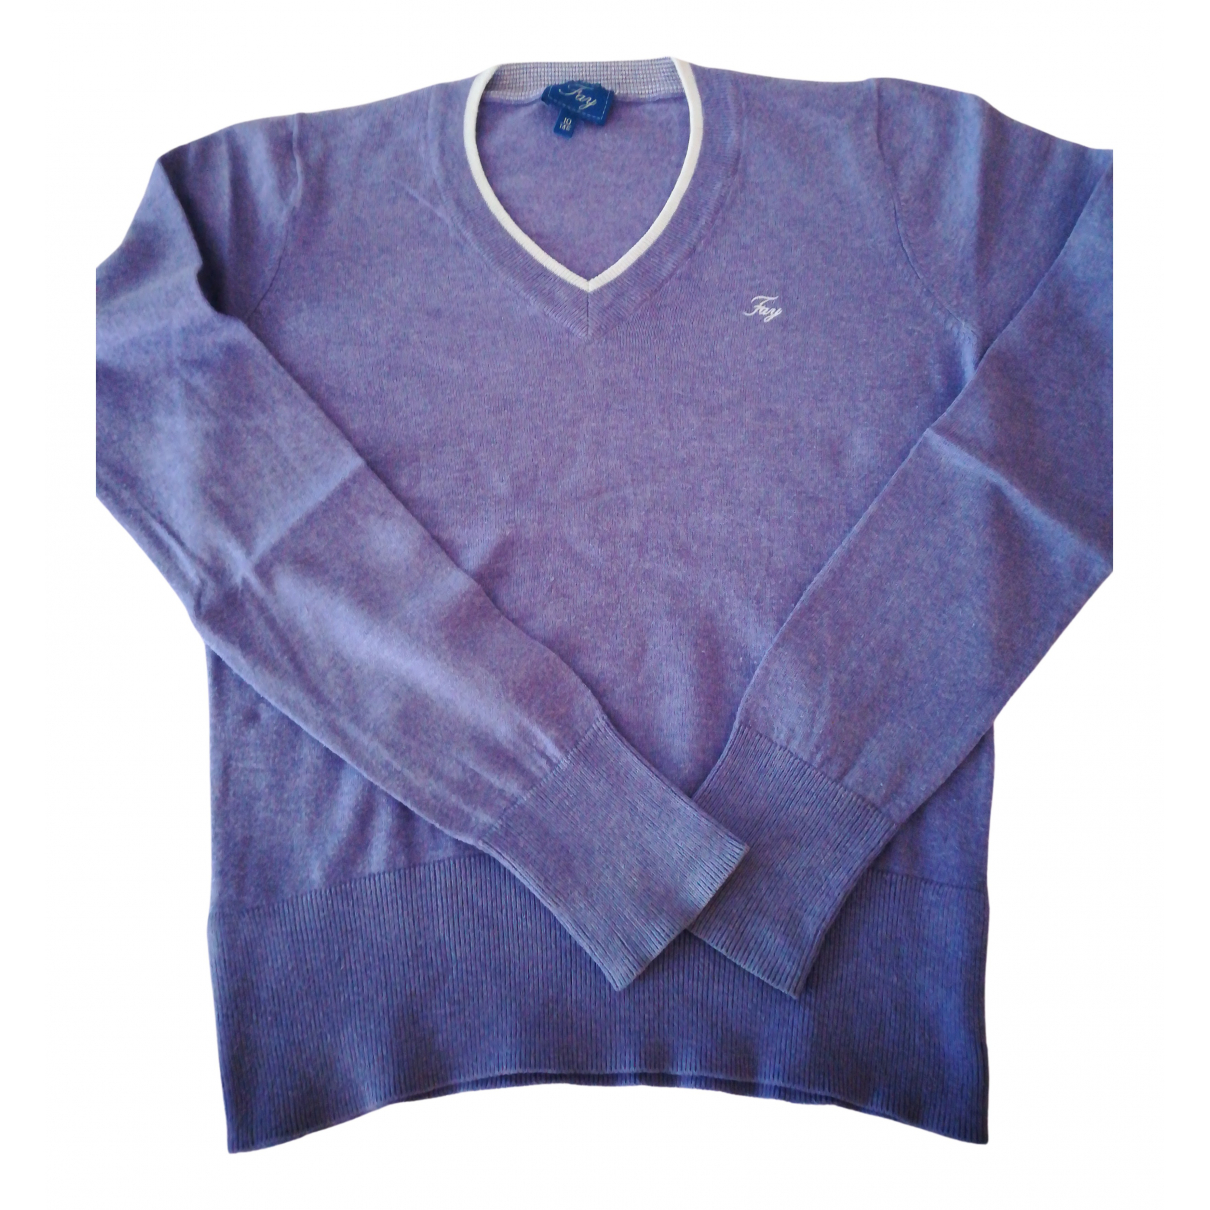 Fay N Purple Cashmere Knitwear for Kids 10 years - until 56 inches UK